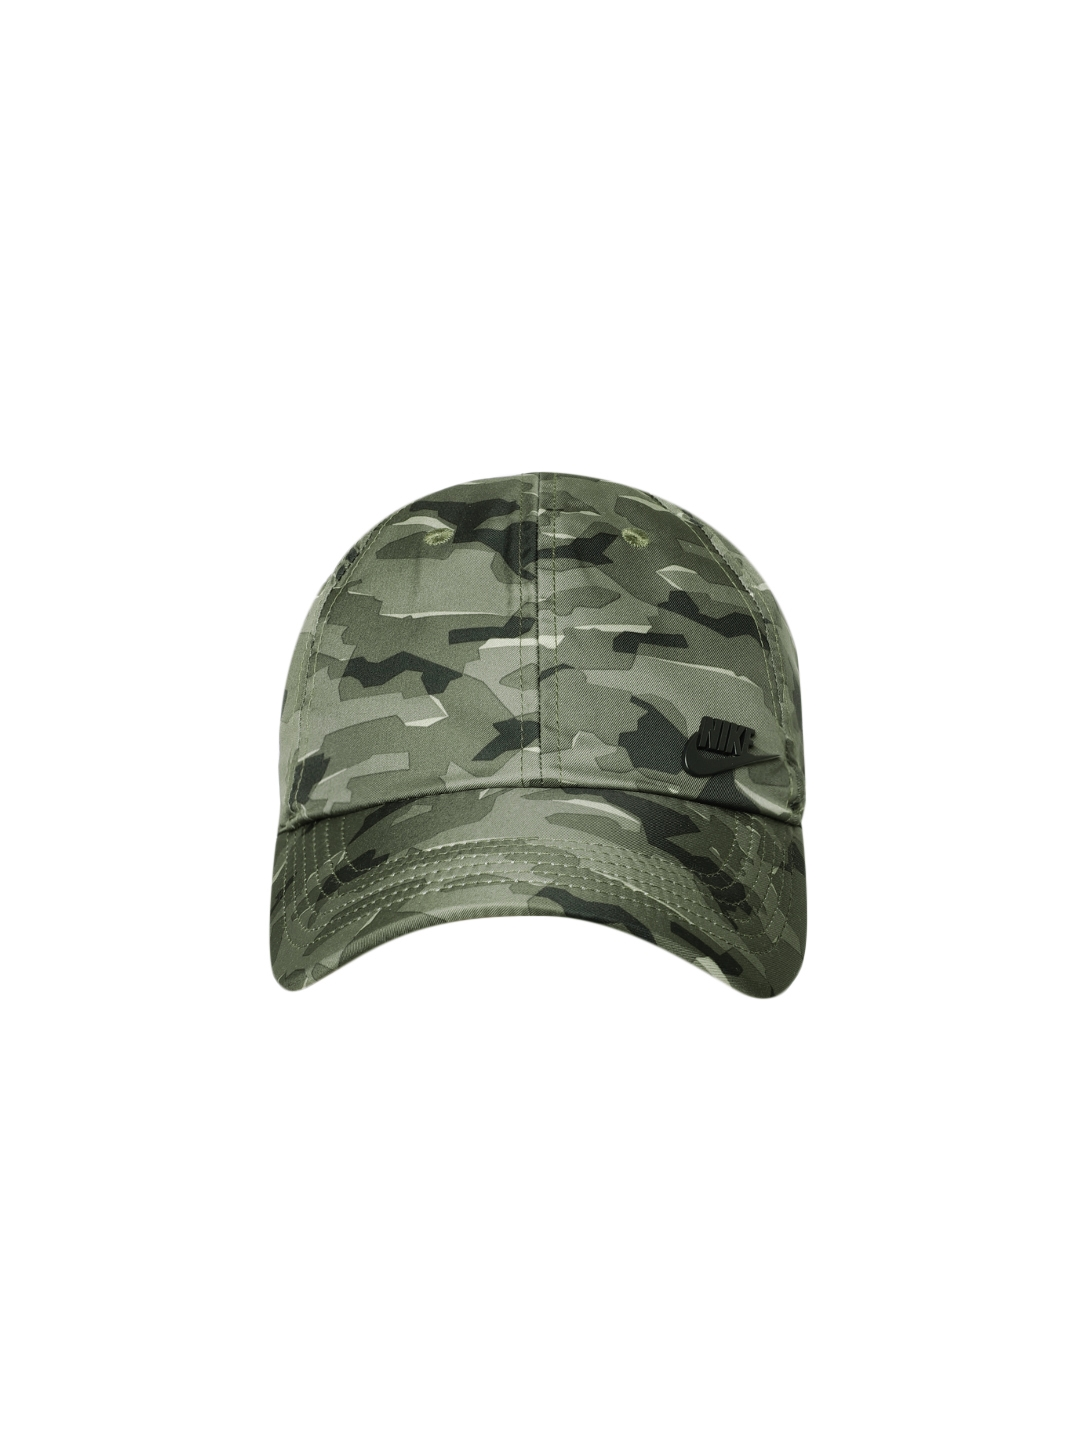 4b3b16555390d Buy Nike Unisex Green Camouflage Print Baseball Cap - Caps for ...